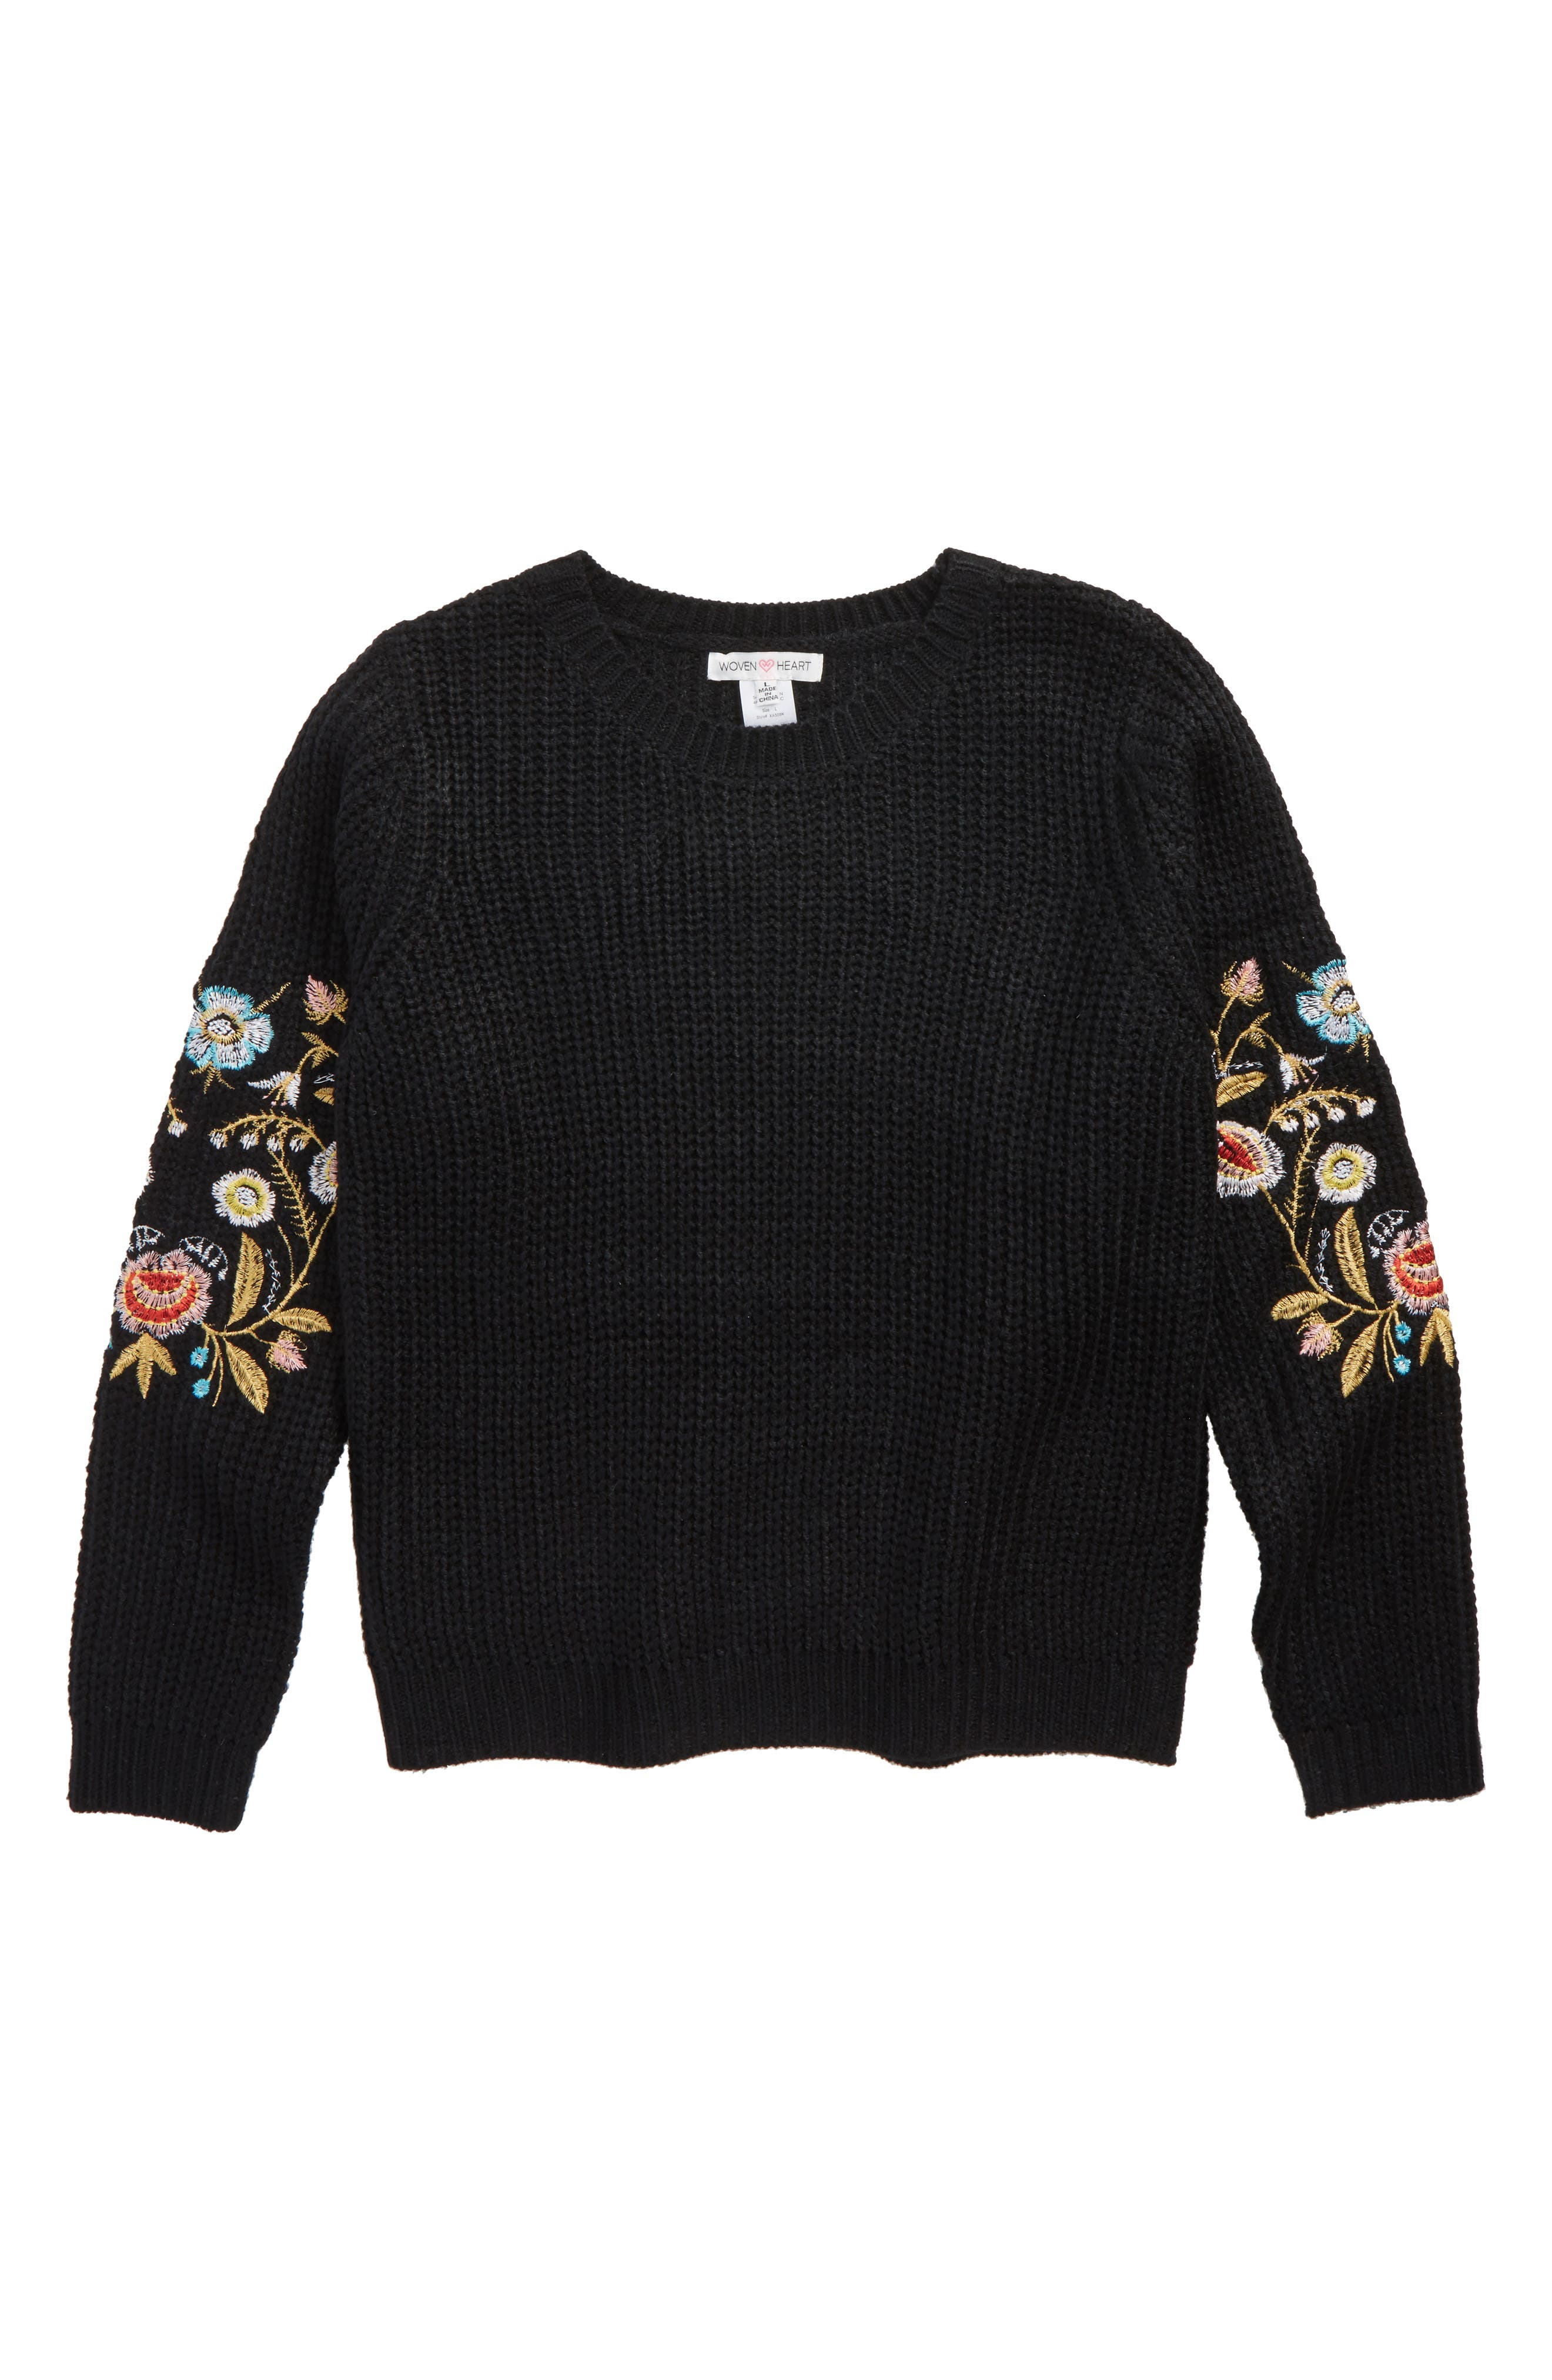 Embroidered Sleeve Sweater,                             Main thumbnail 1, color,                             001